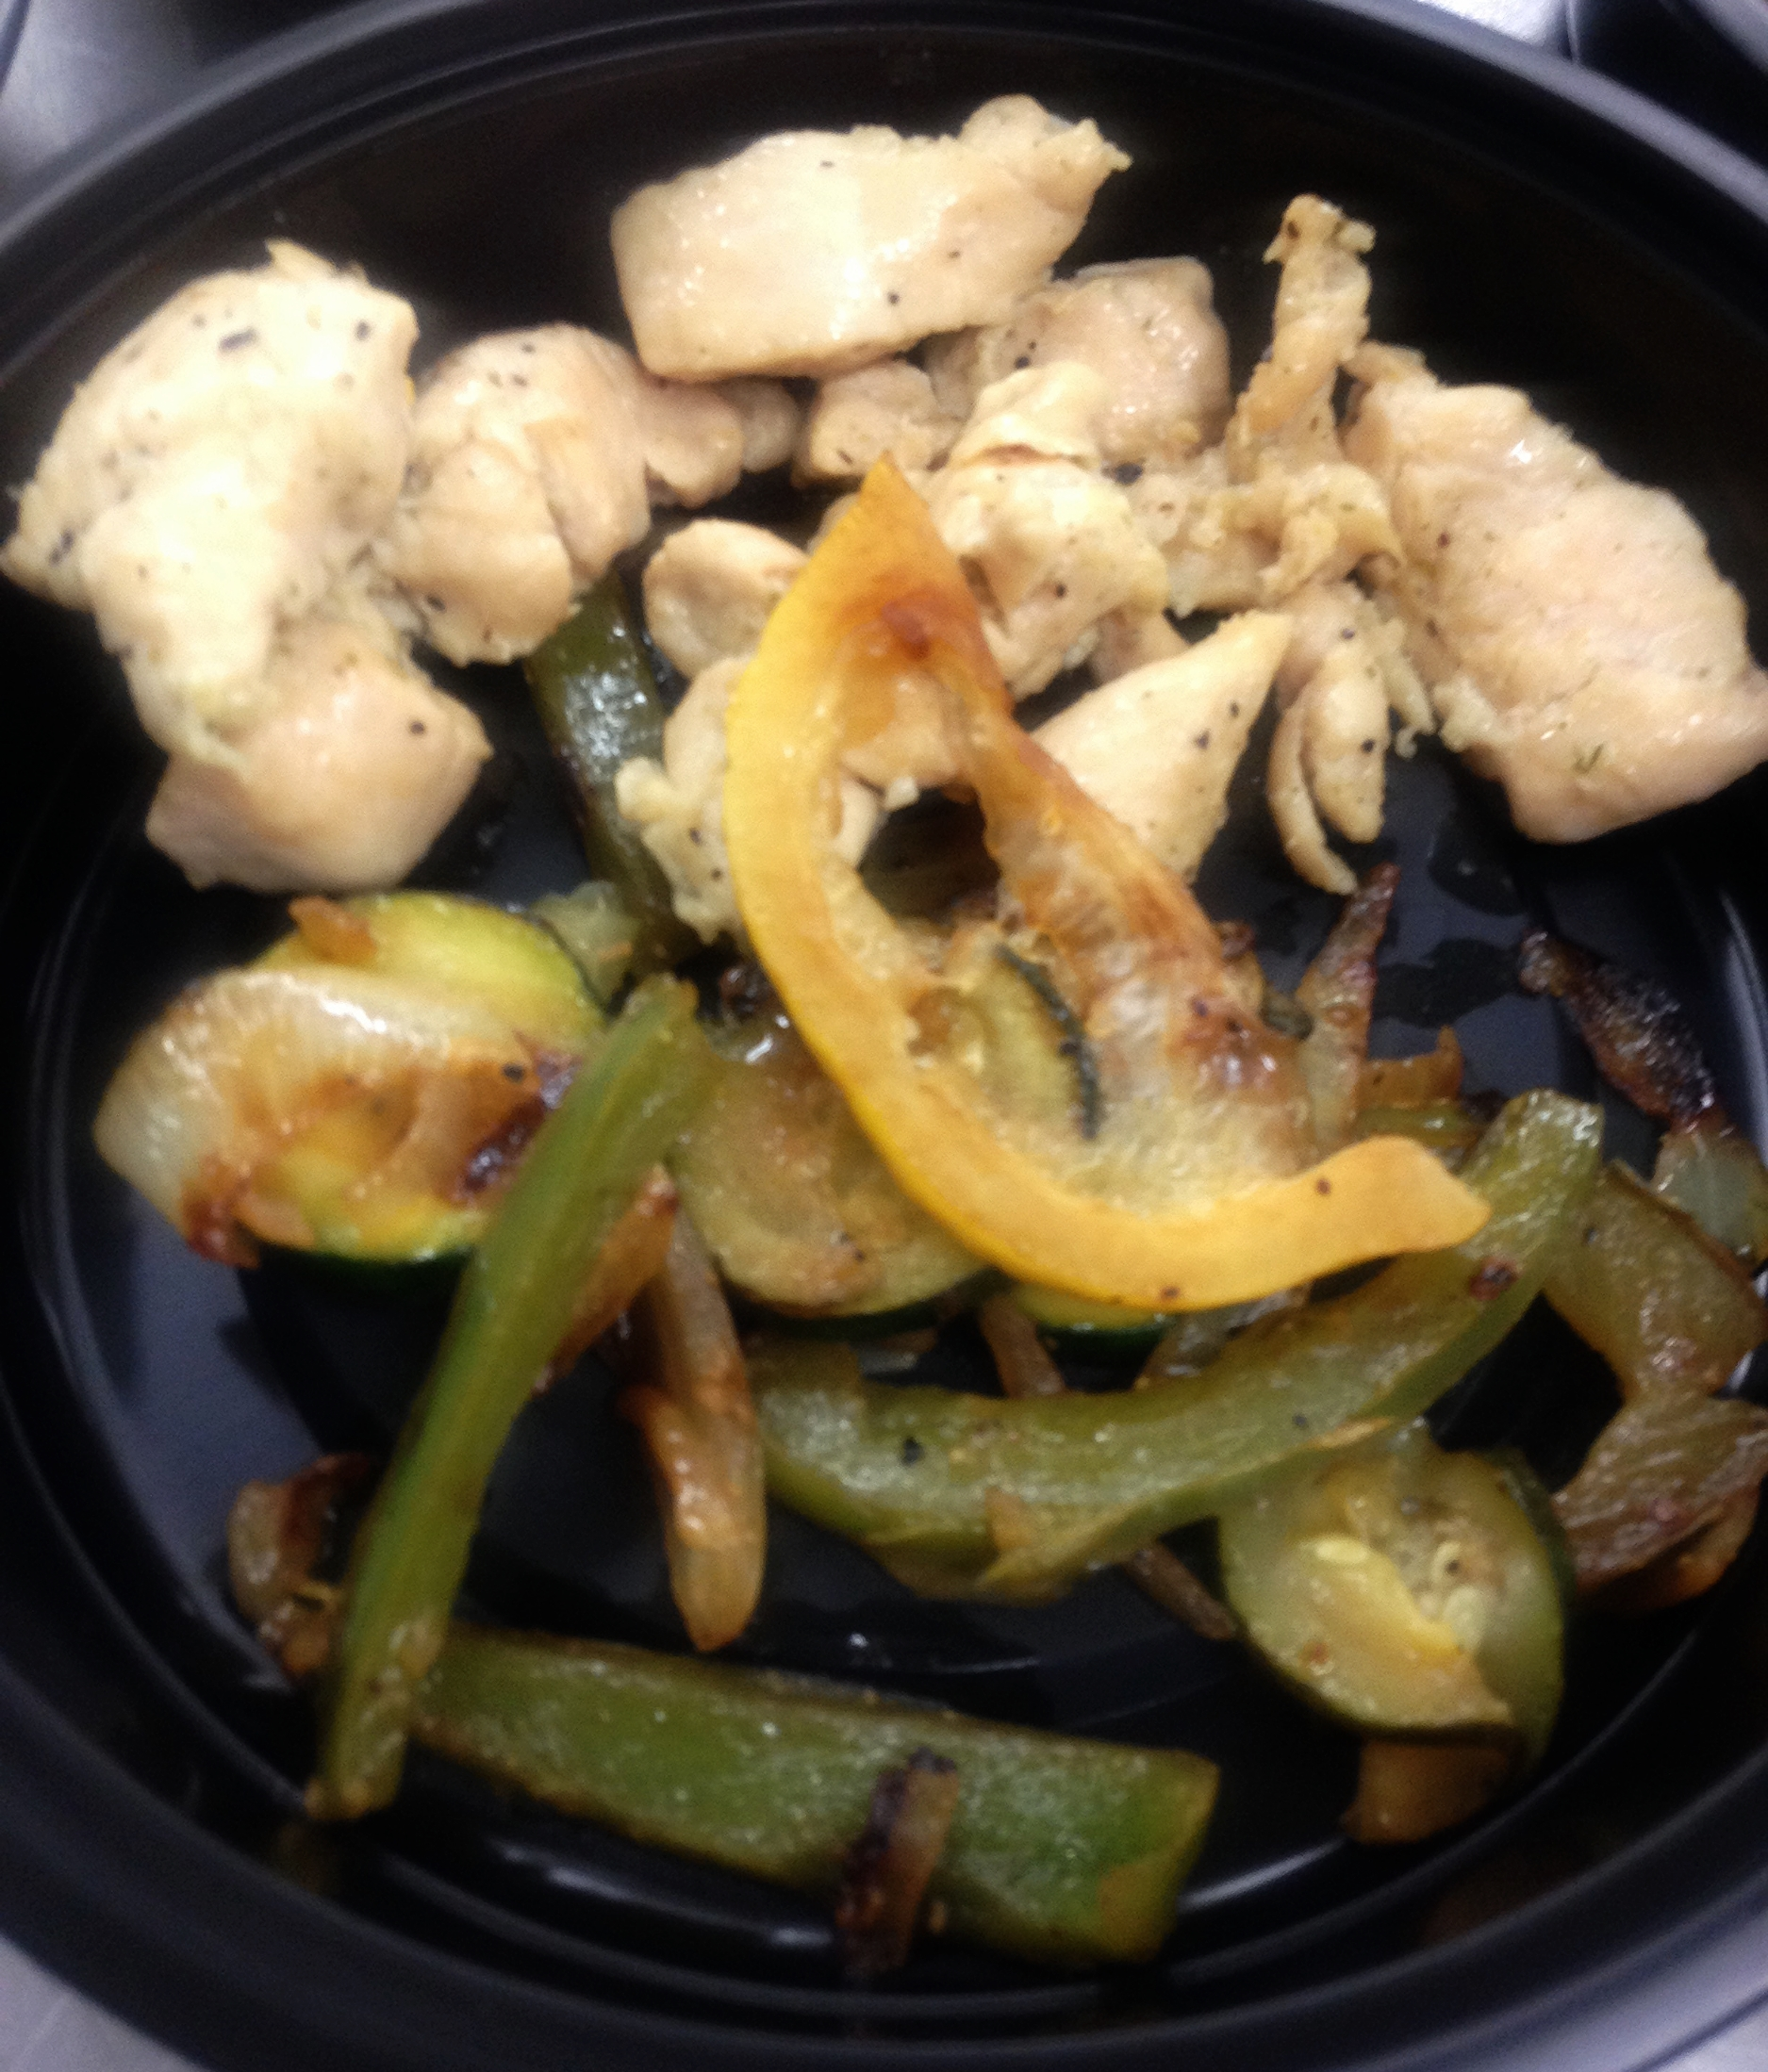 Lunch: Free Range Chicken Sautéed with Onions and Peppers!